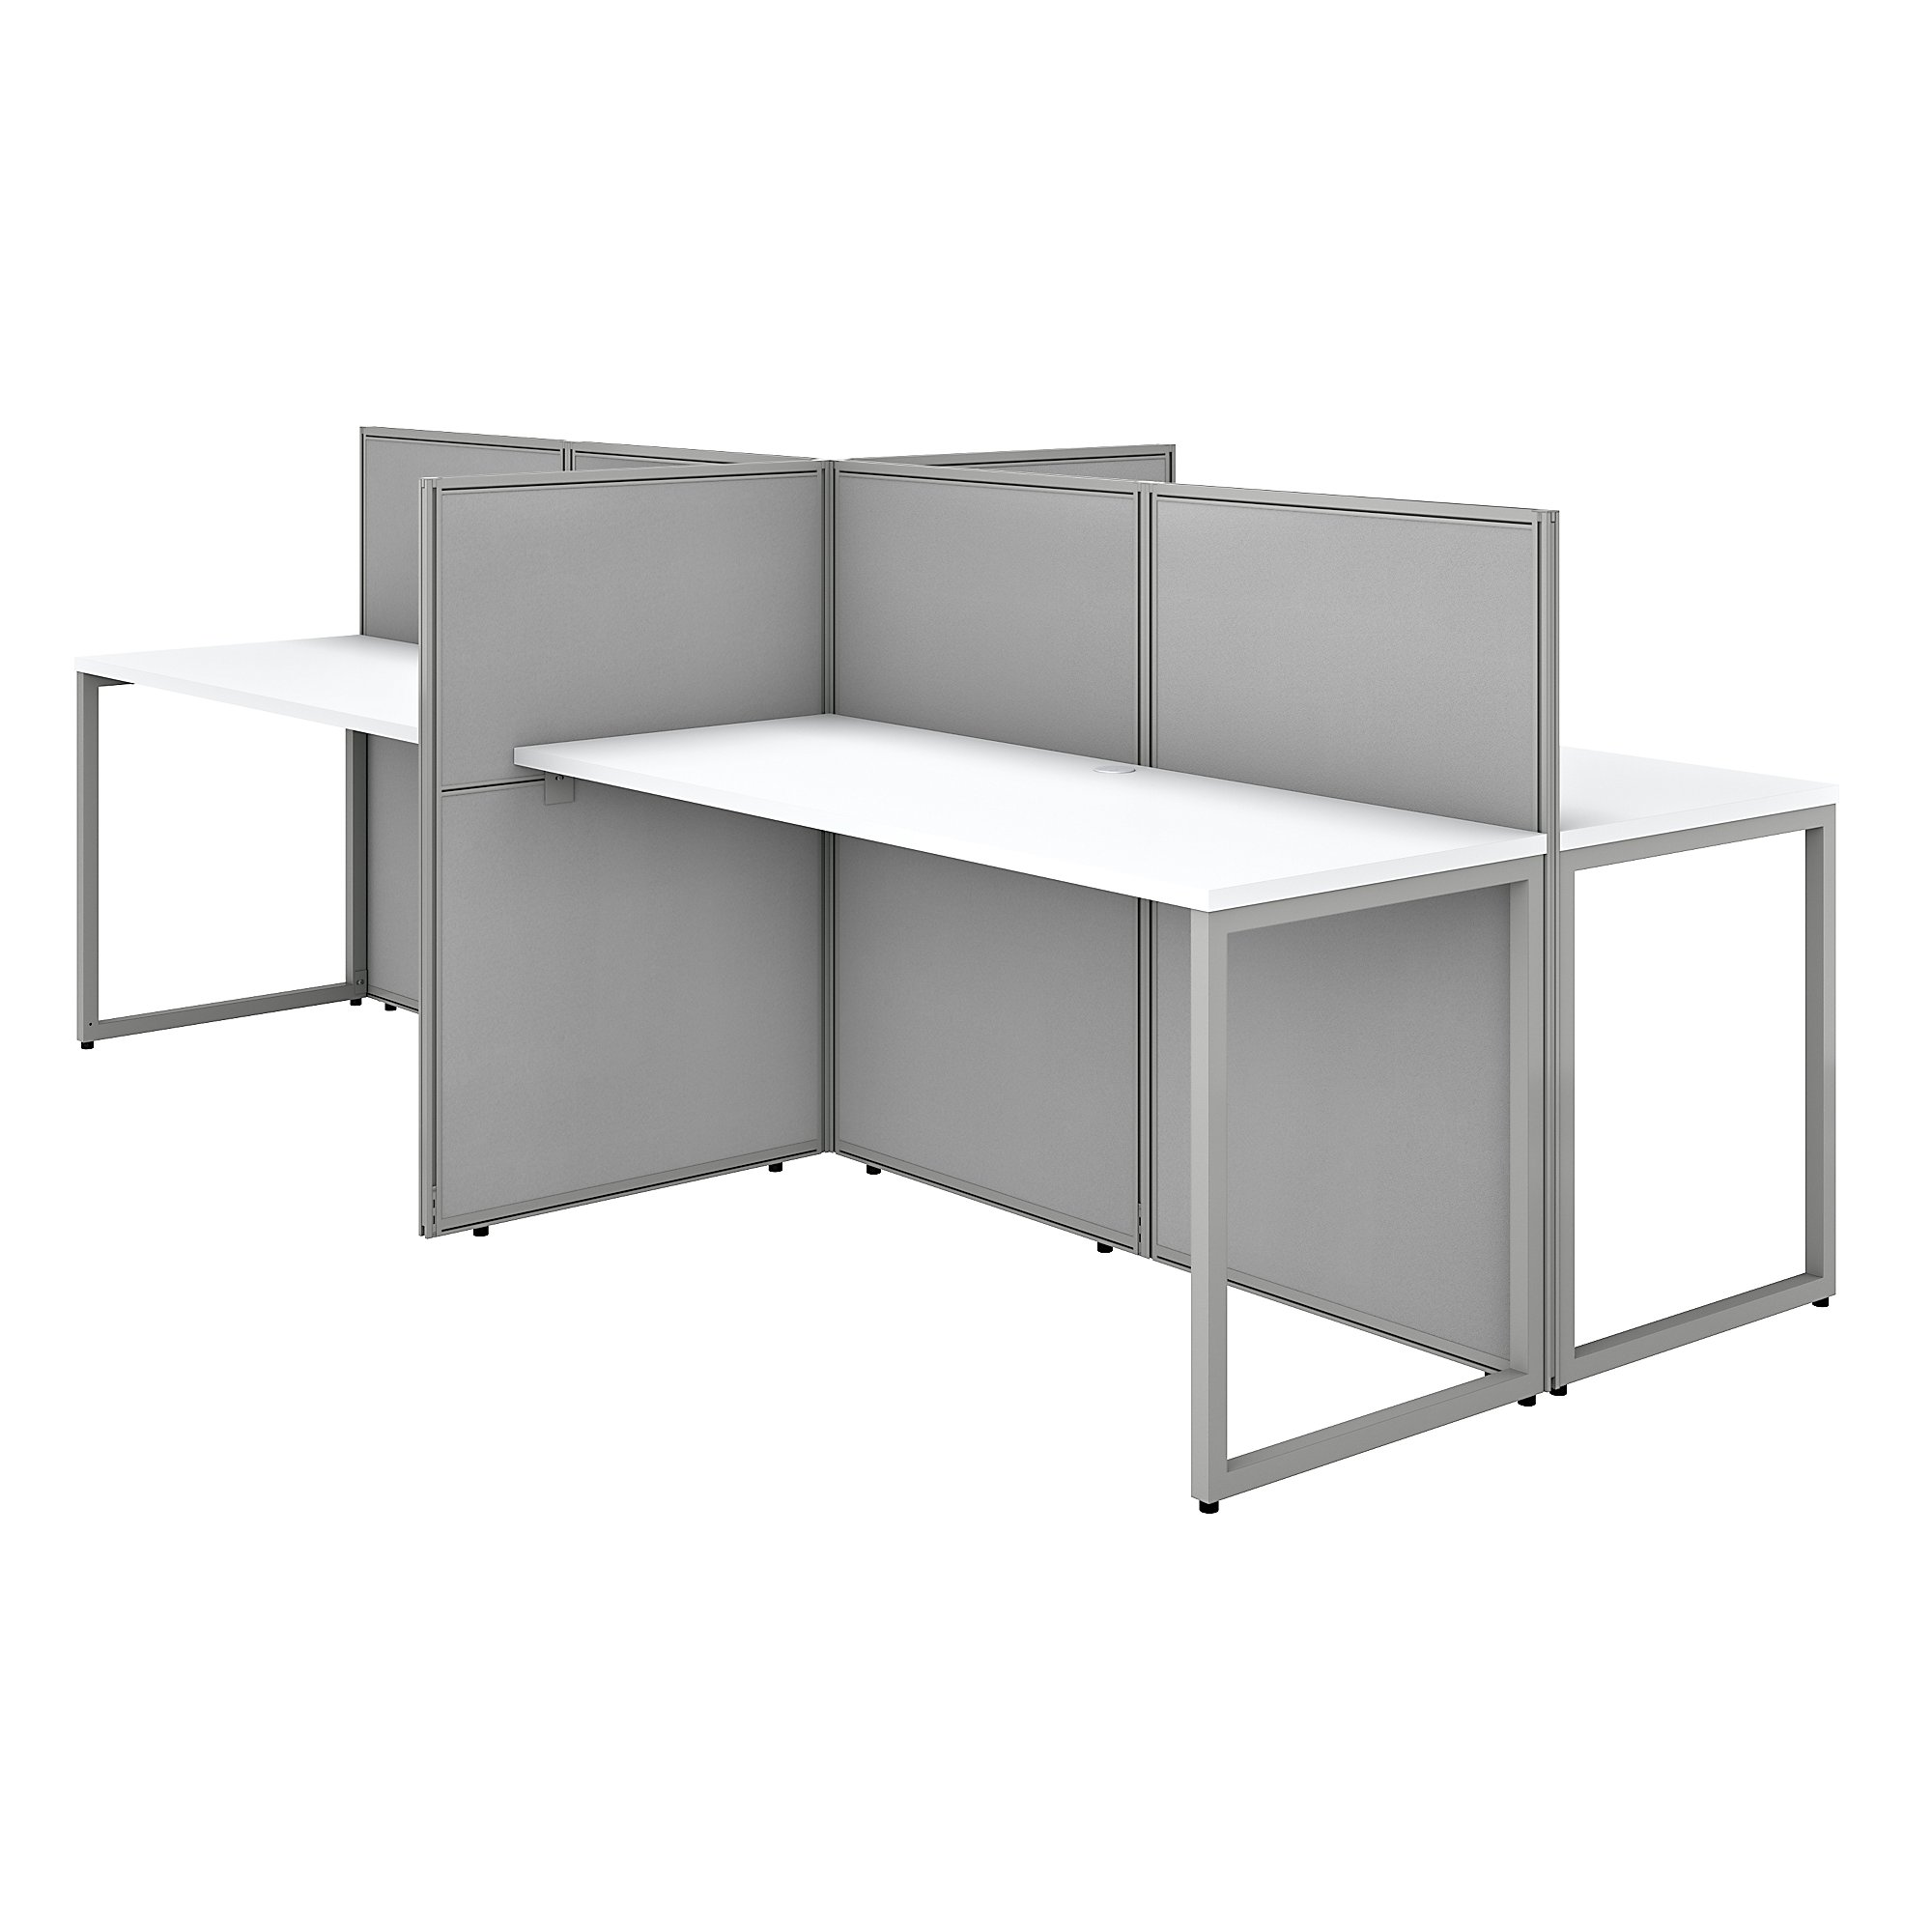 easy office 4 person cubicle